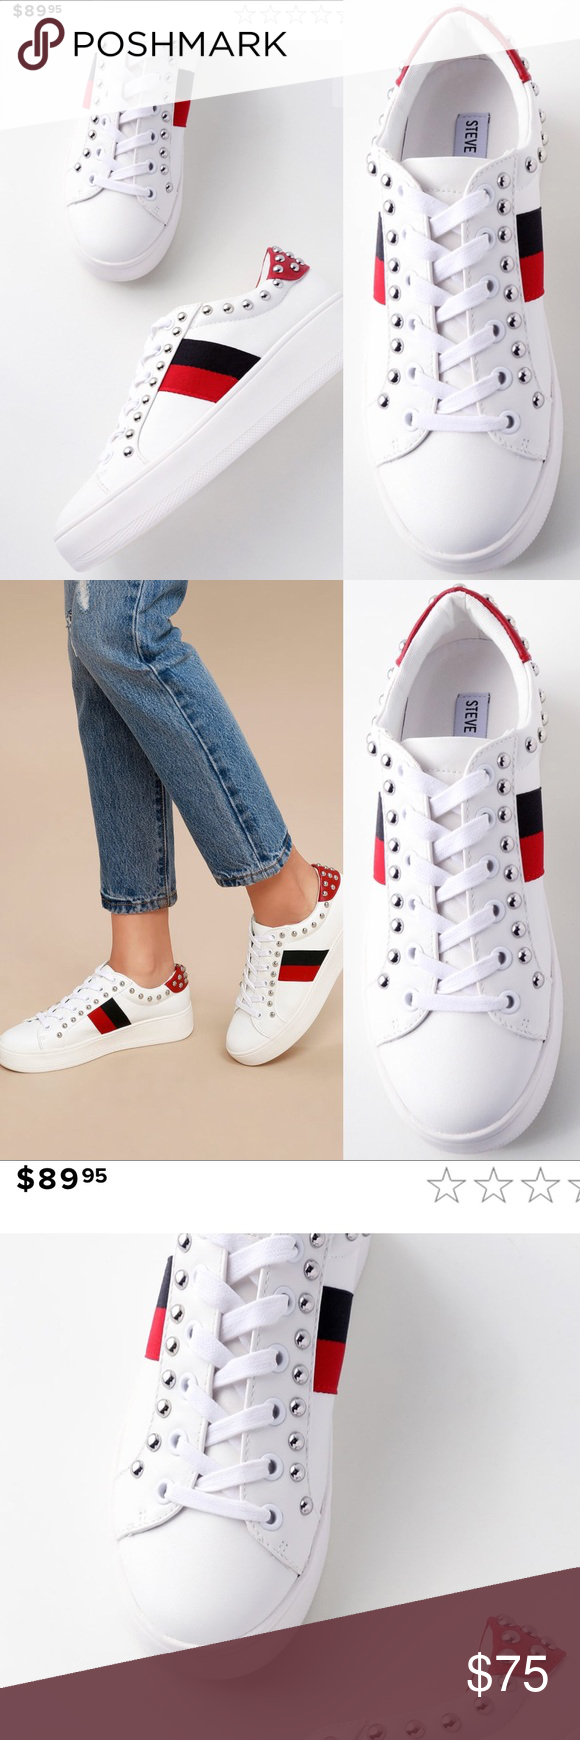 8c1e972dc Steve Madden White Multi Leather Sneakers You will be #trending when you  rock the Steve Madden Belle White Multi Leather Sneakers!